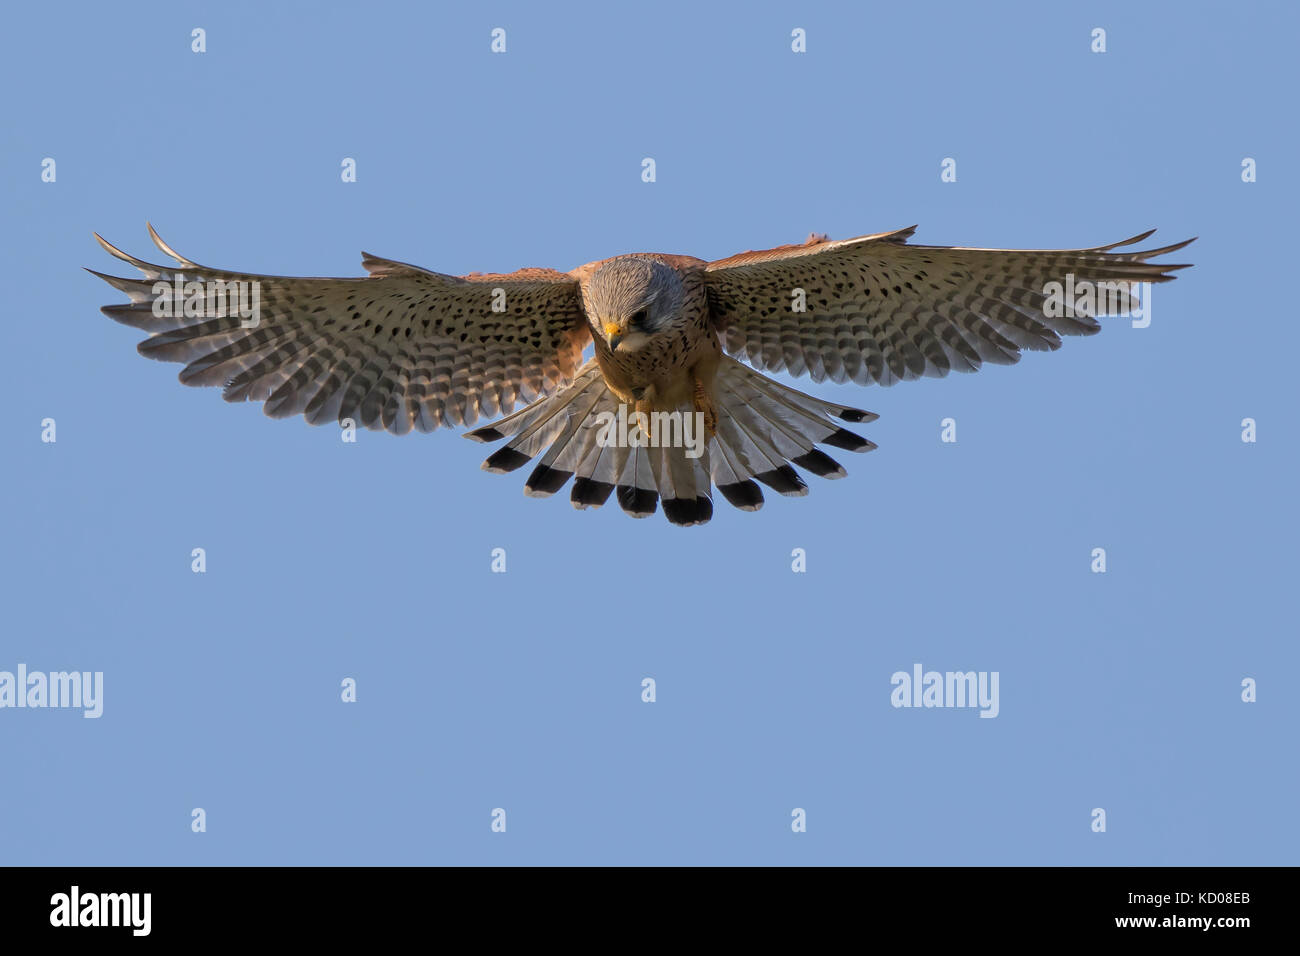 Detailed close up of a wild, adult male kestrel (Falco tinnunculus) skilfully hovering in mid air, wings fully extended. - Stock Image